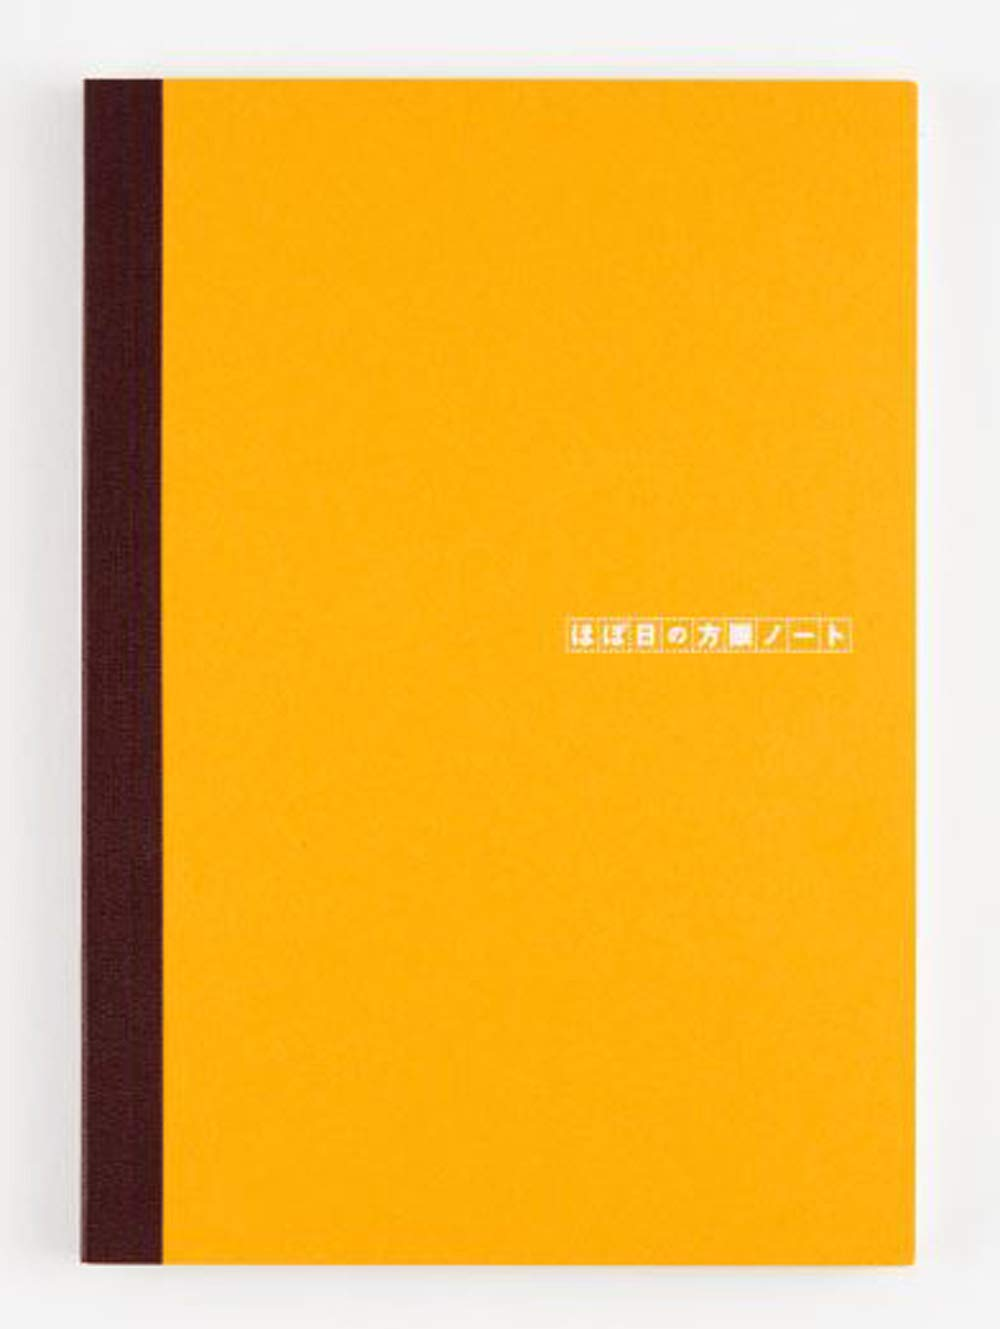 Hobonichi Graph Notebook Cousin by Hobonichi Techo